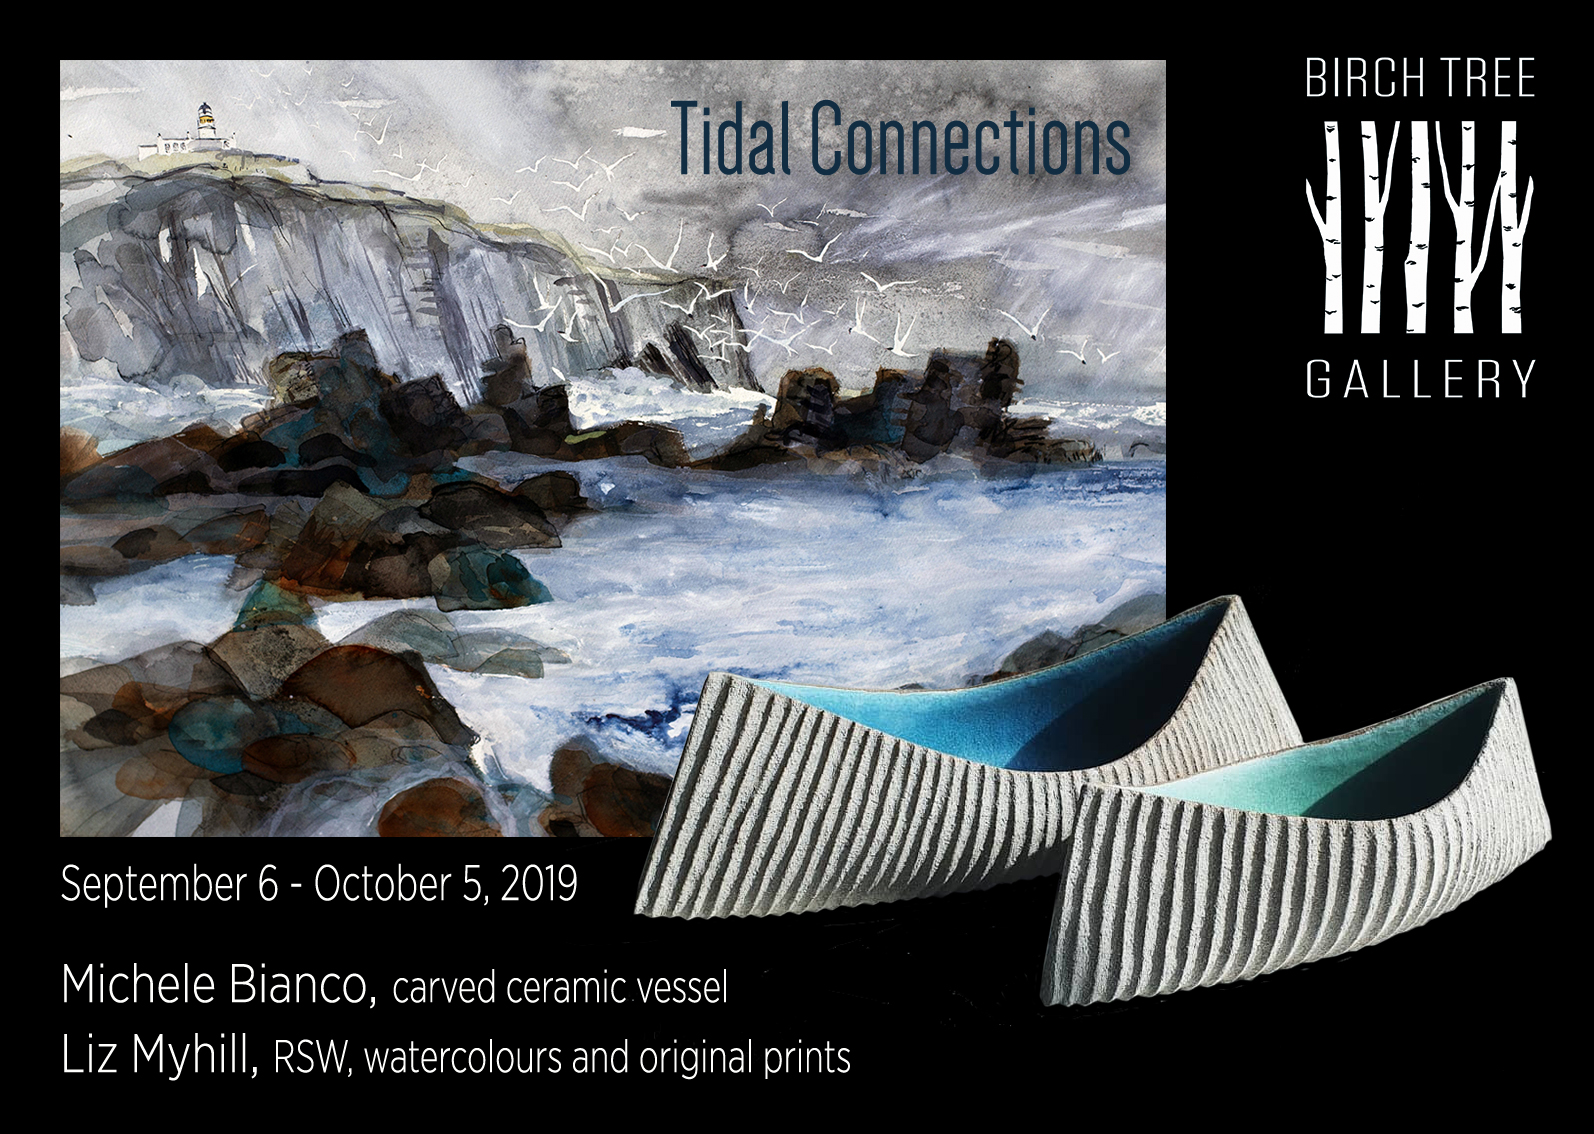 Birch Tree Gallery - Tidal Connections